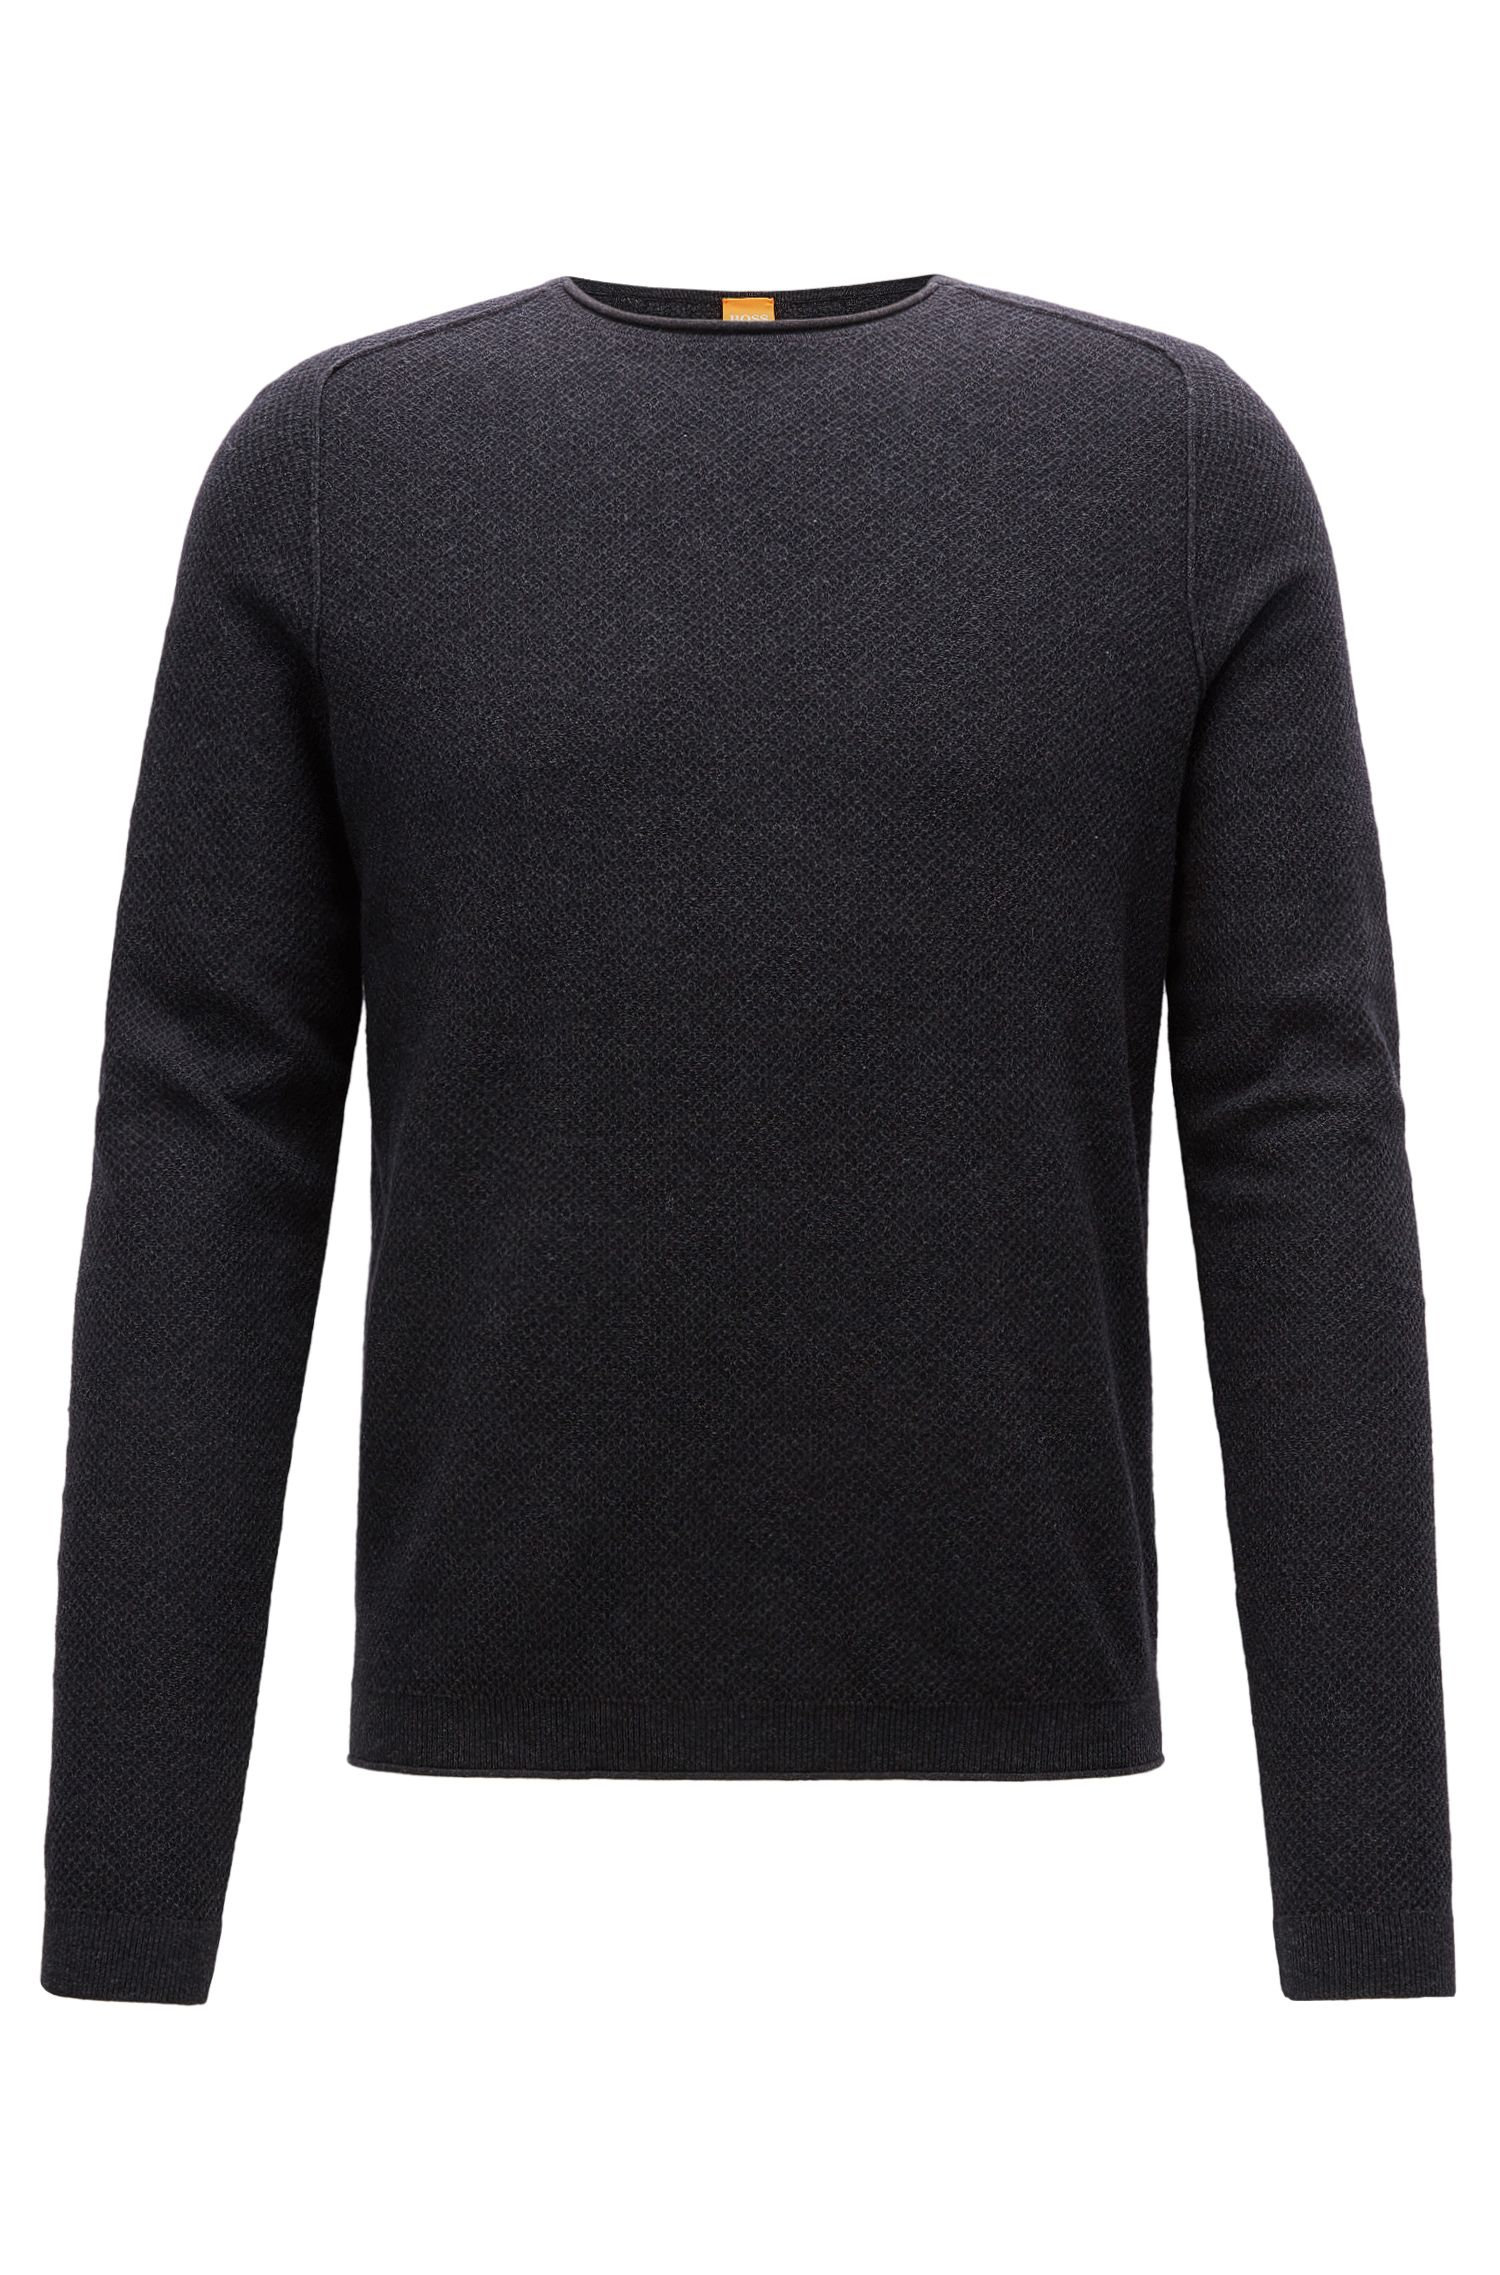 Regular-fit sweater in micro-structure fabric